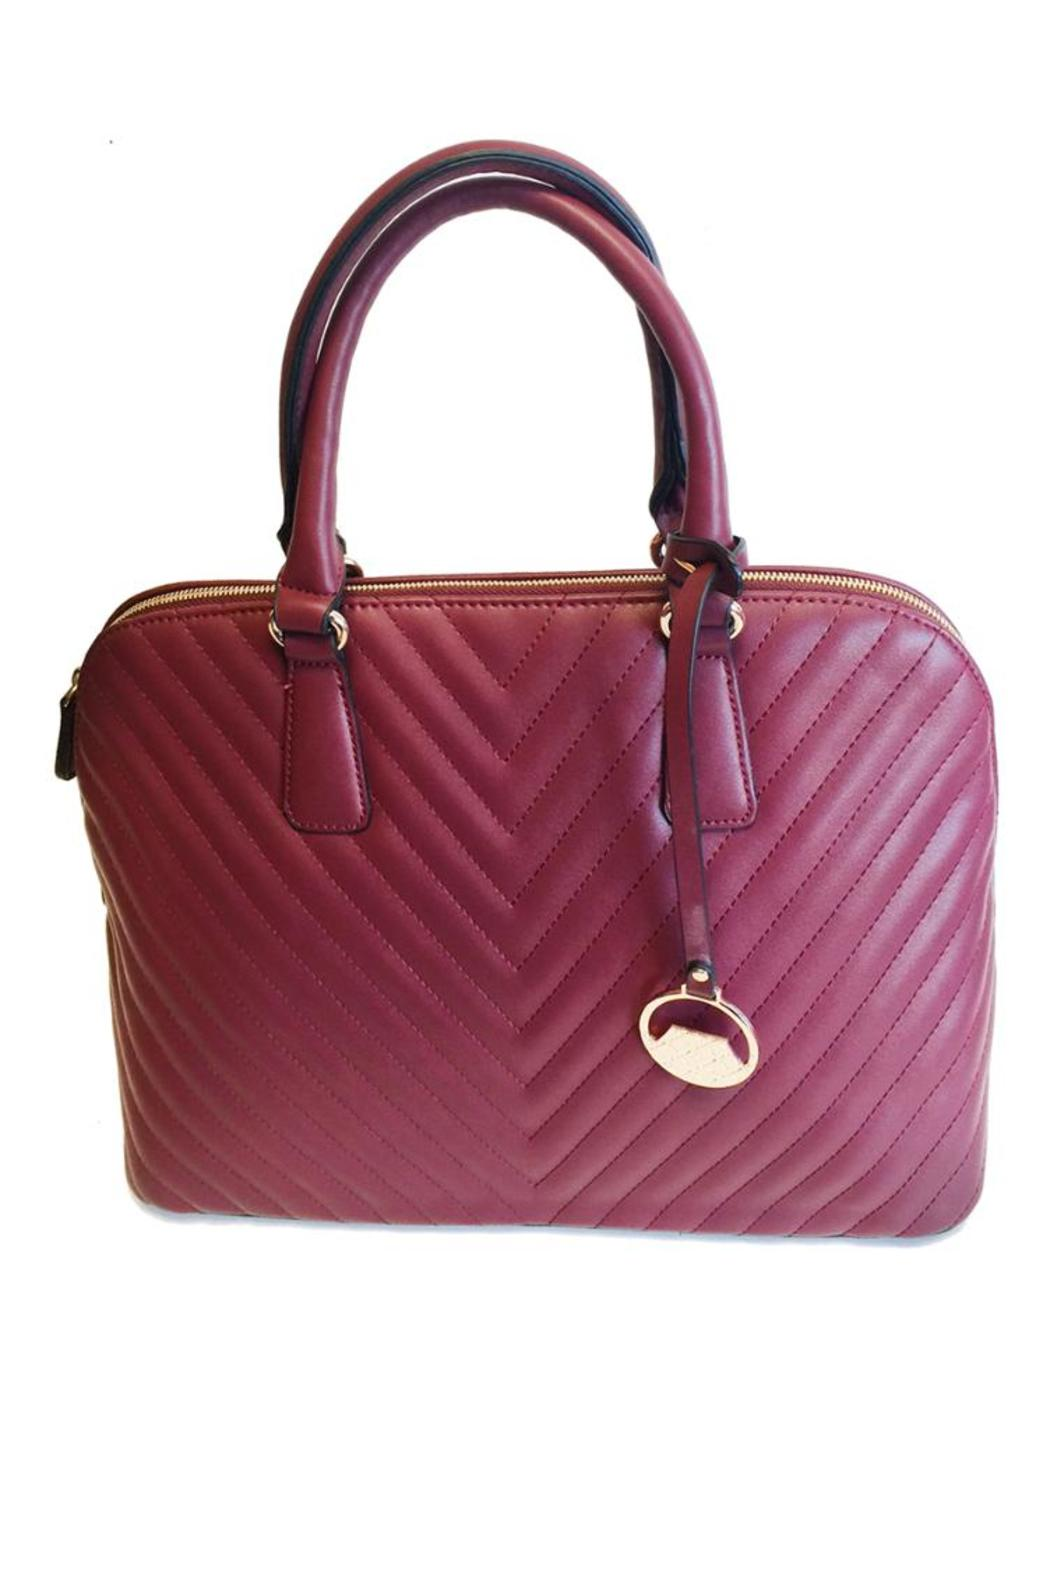 Wine Quilted Handbag From Las Vegas By Glam Squad Shop